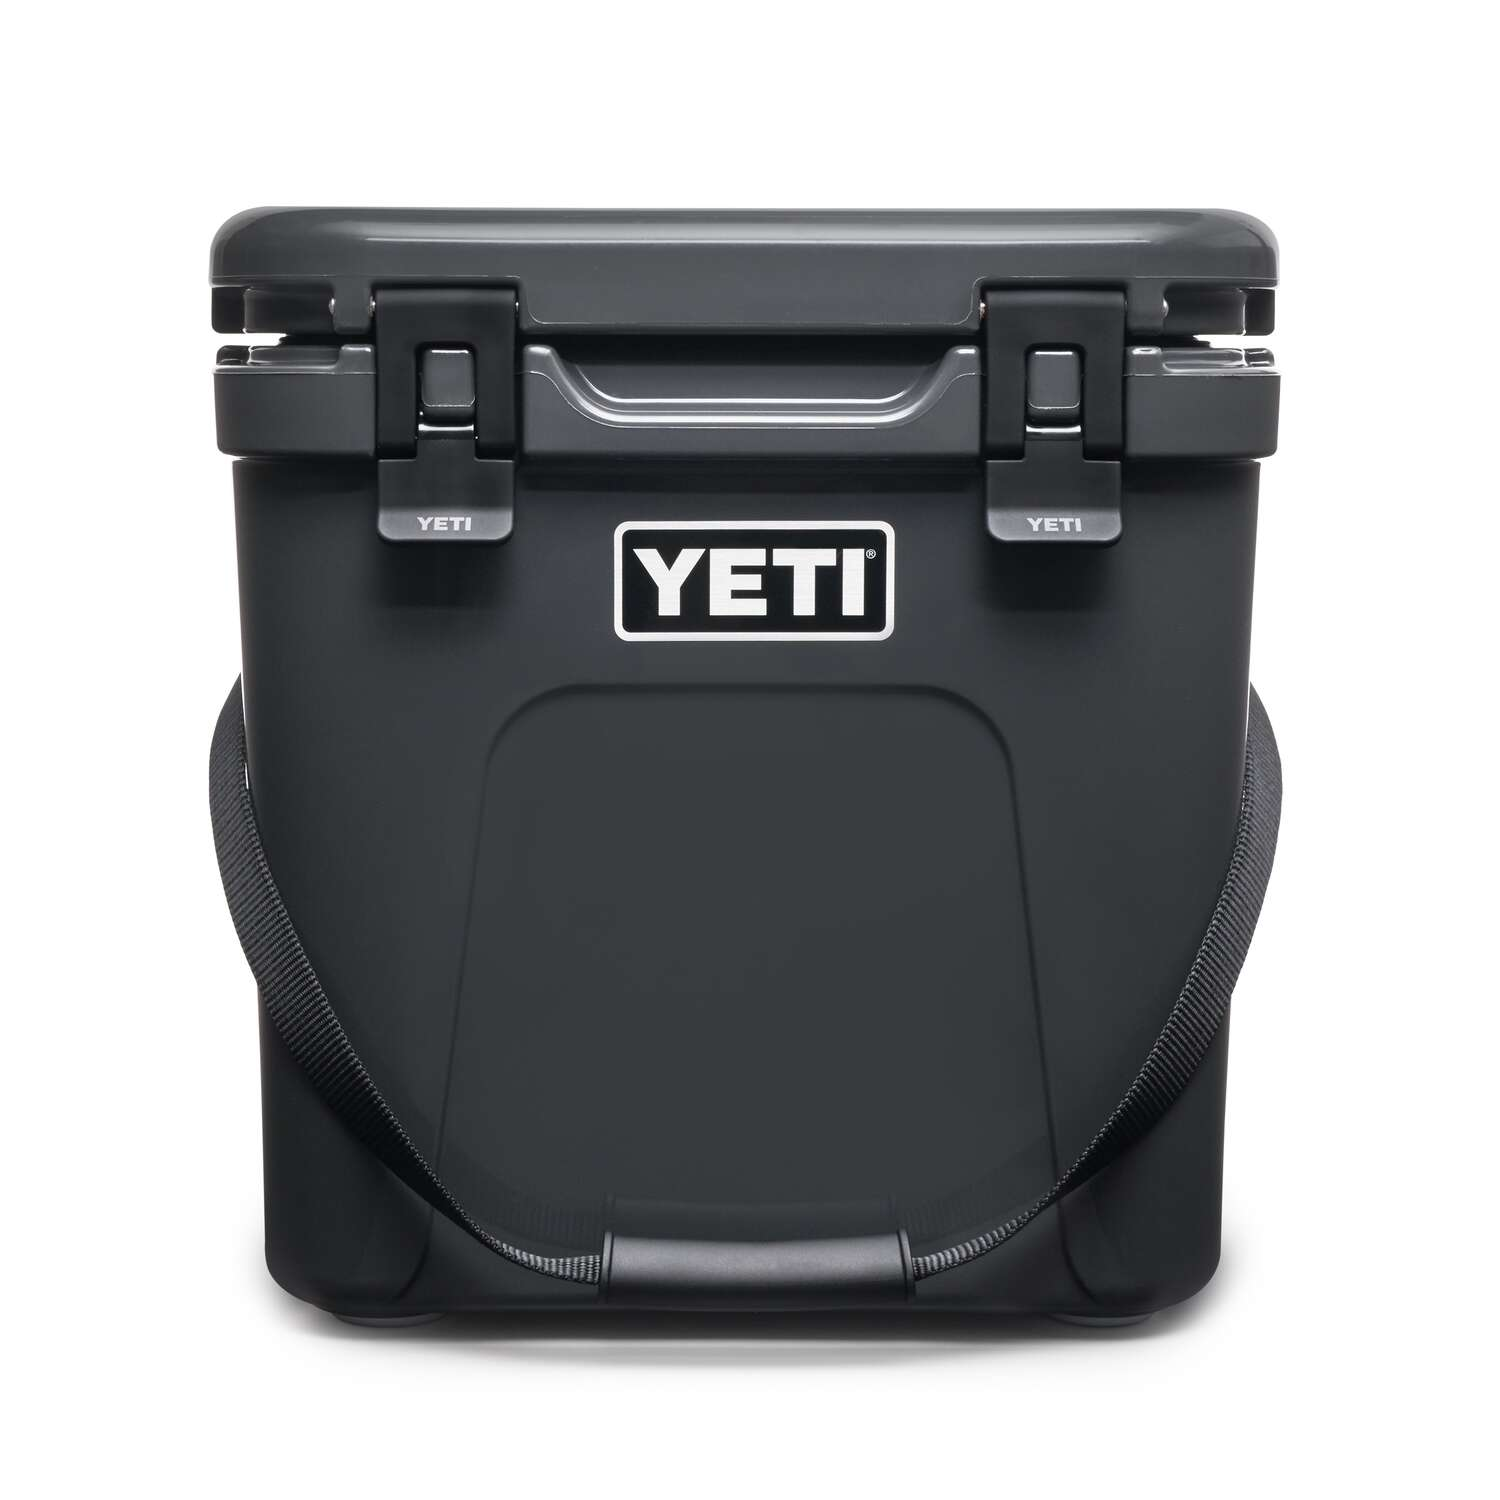 YETI Roadie Cooler 24 qt. Charcoal